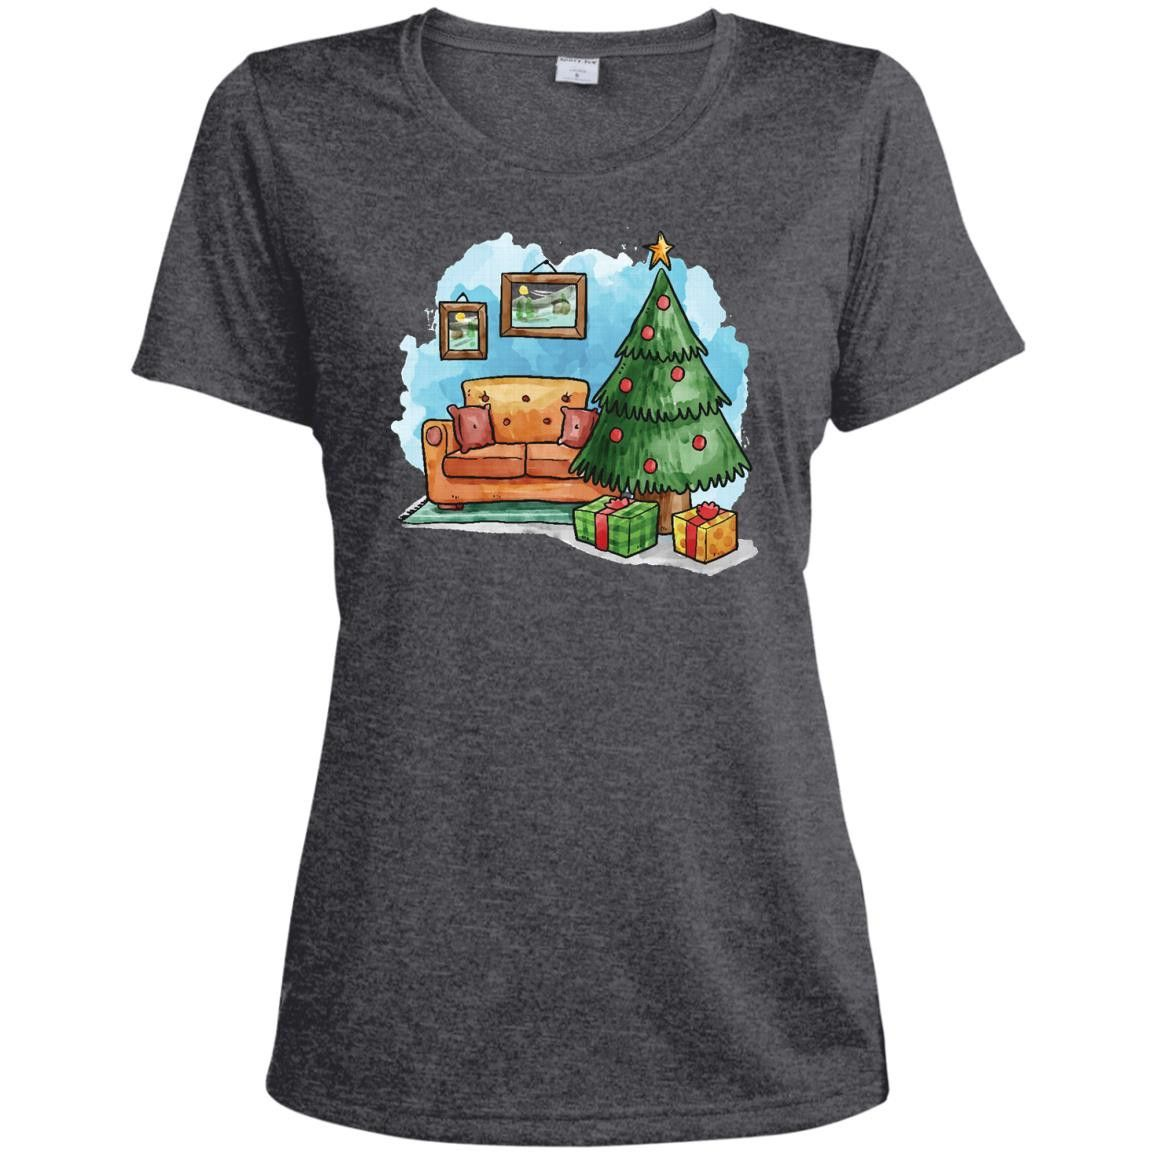 Merry Christmas and Happy New Year36-01 LST360 Sport-Tek Ladies' Heather Dri-Fit Moisture-Wicking T-Shirt